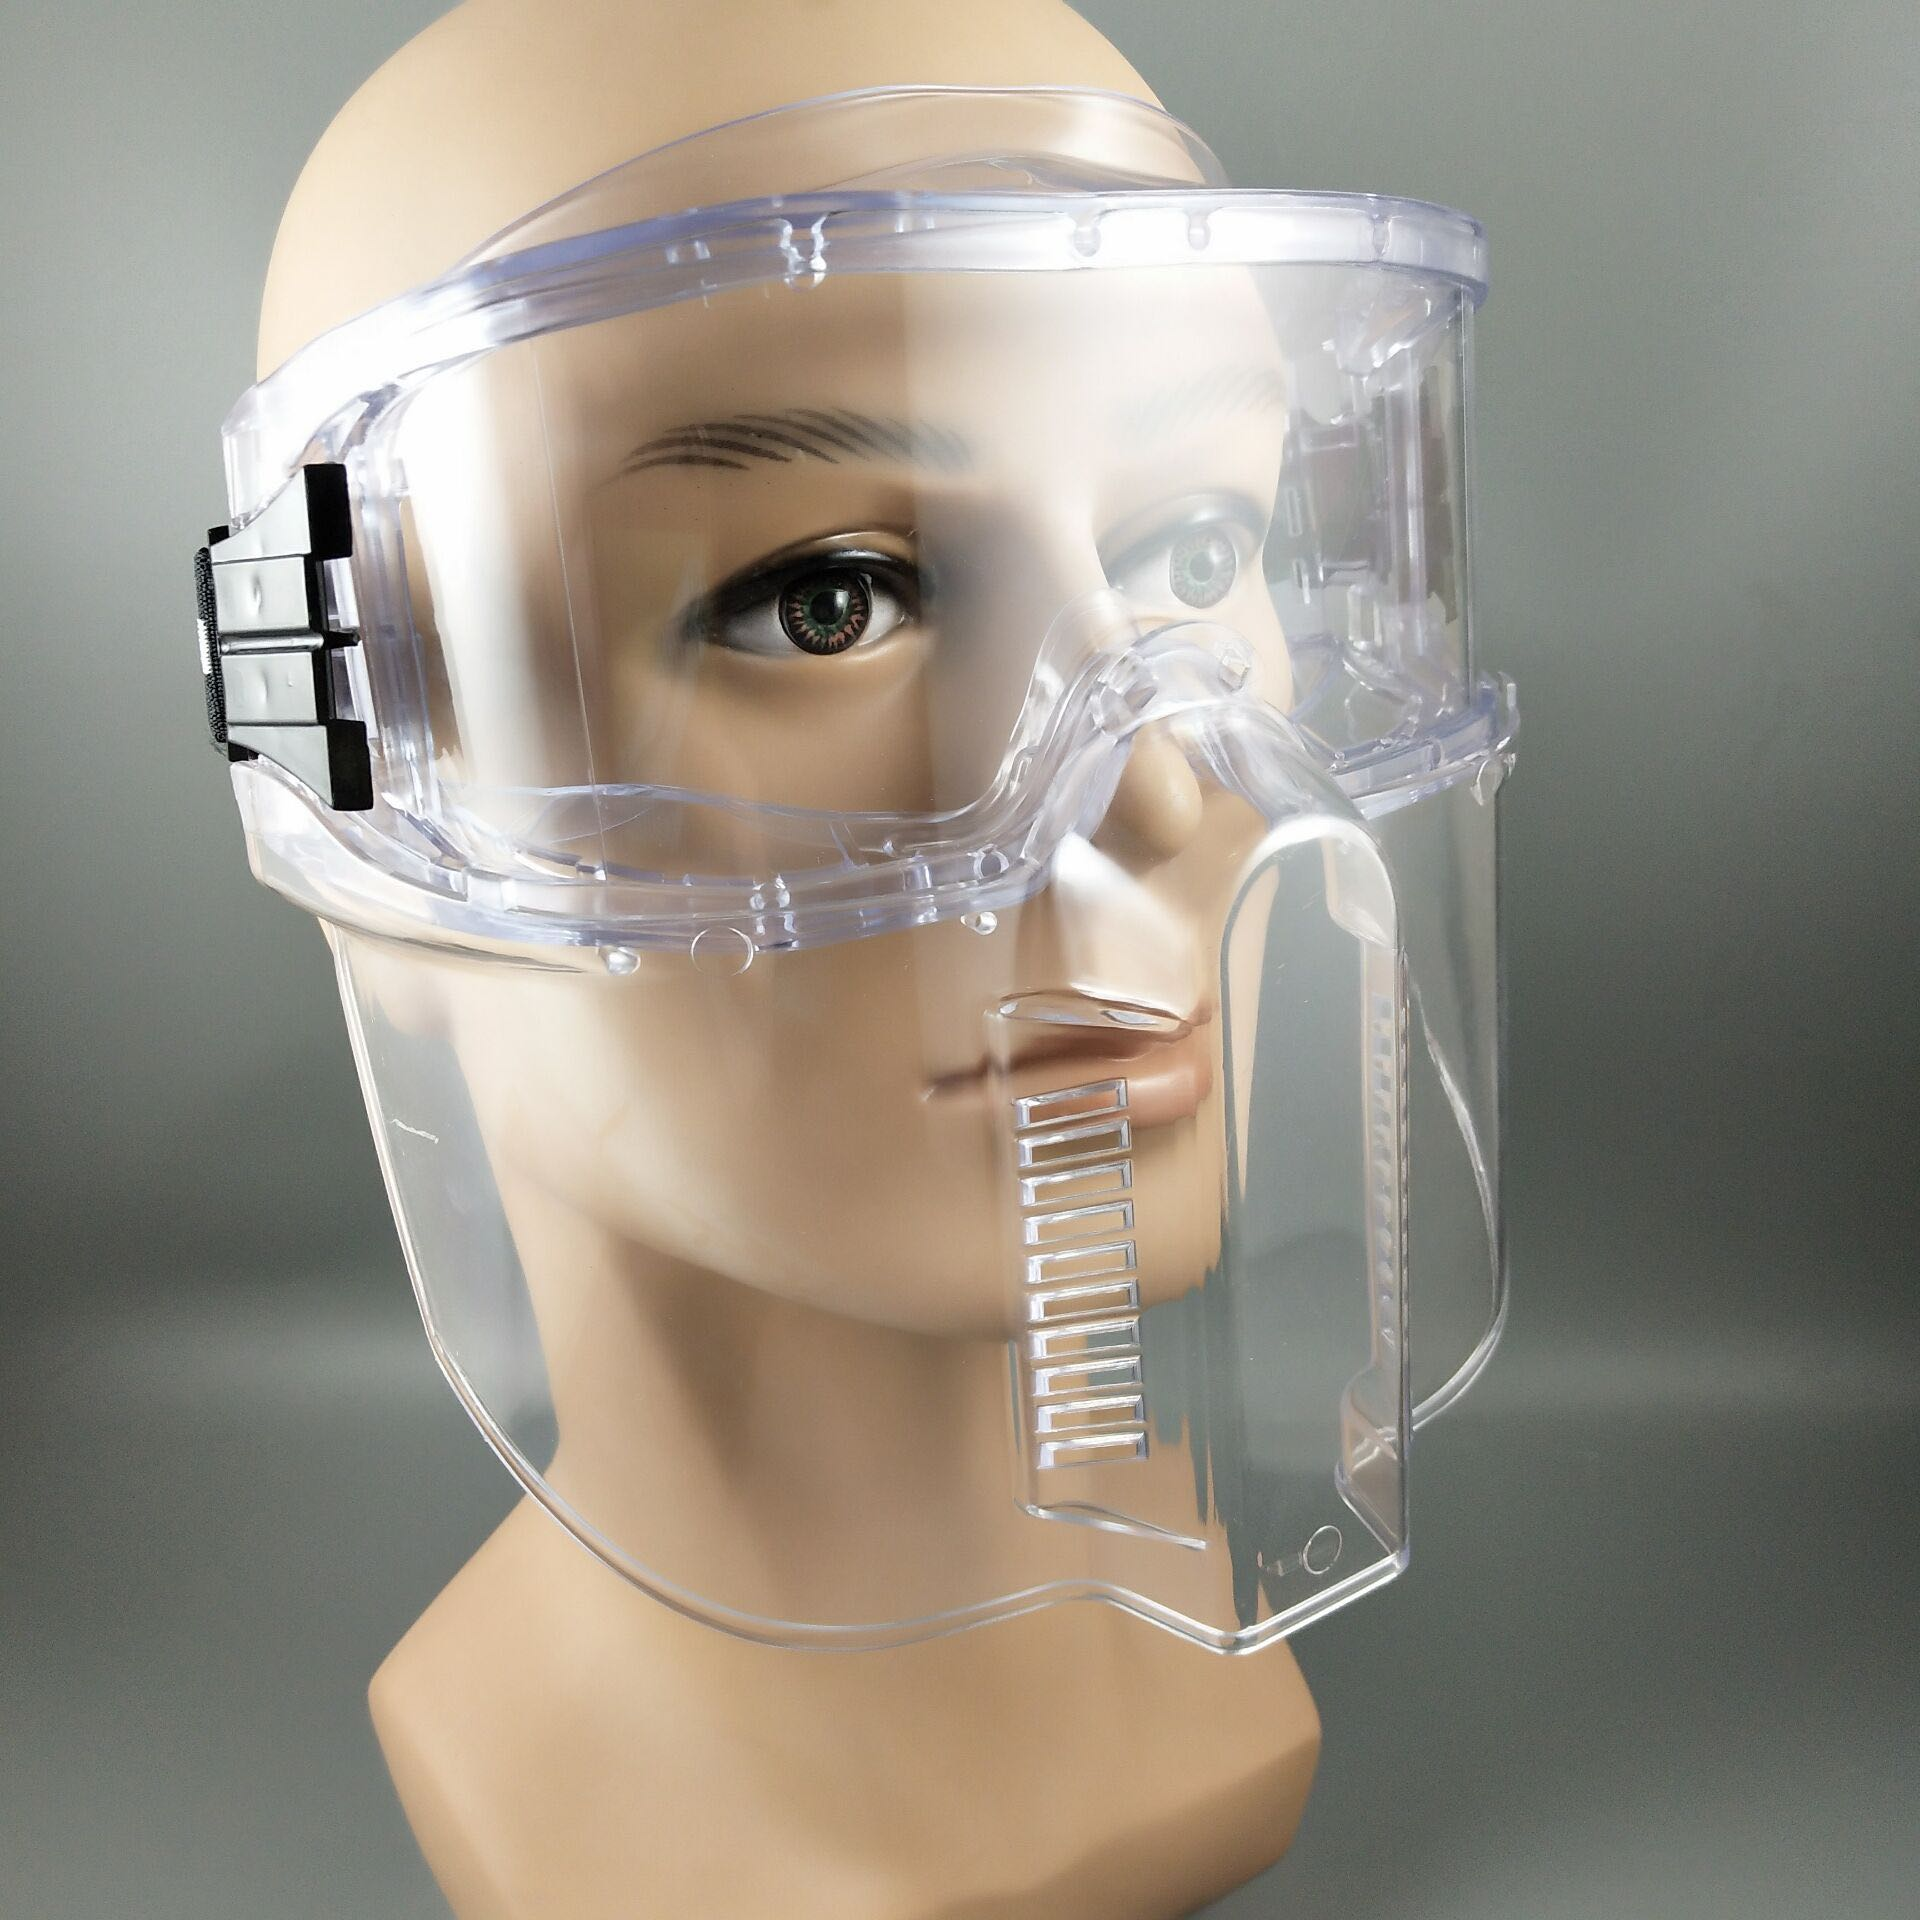 Mail bag anti fog eye mask protective mask people with glasses can use transparent lens anti impact goggles